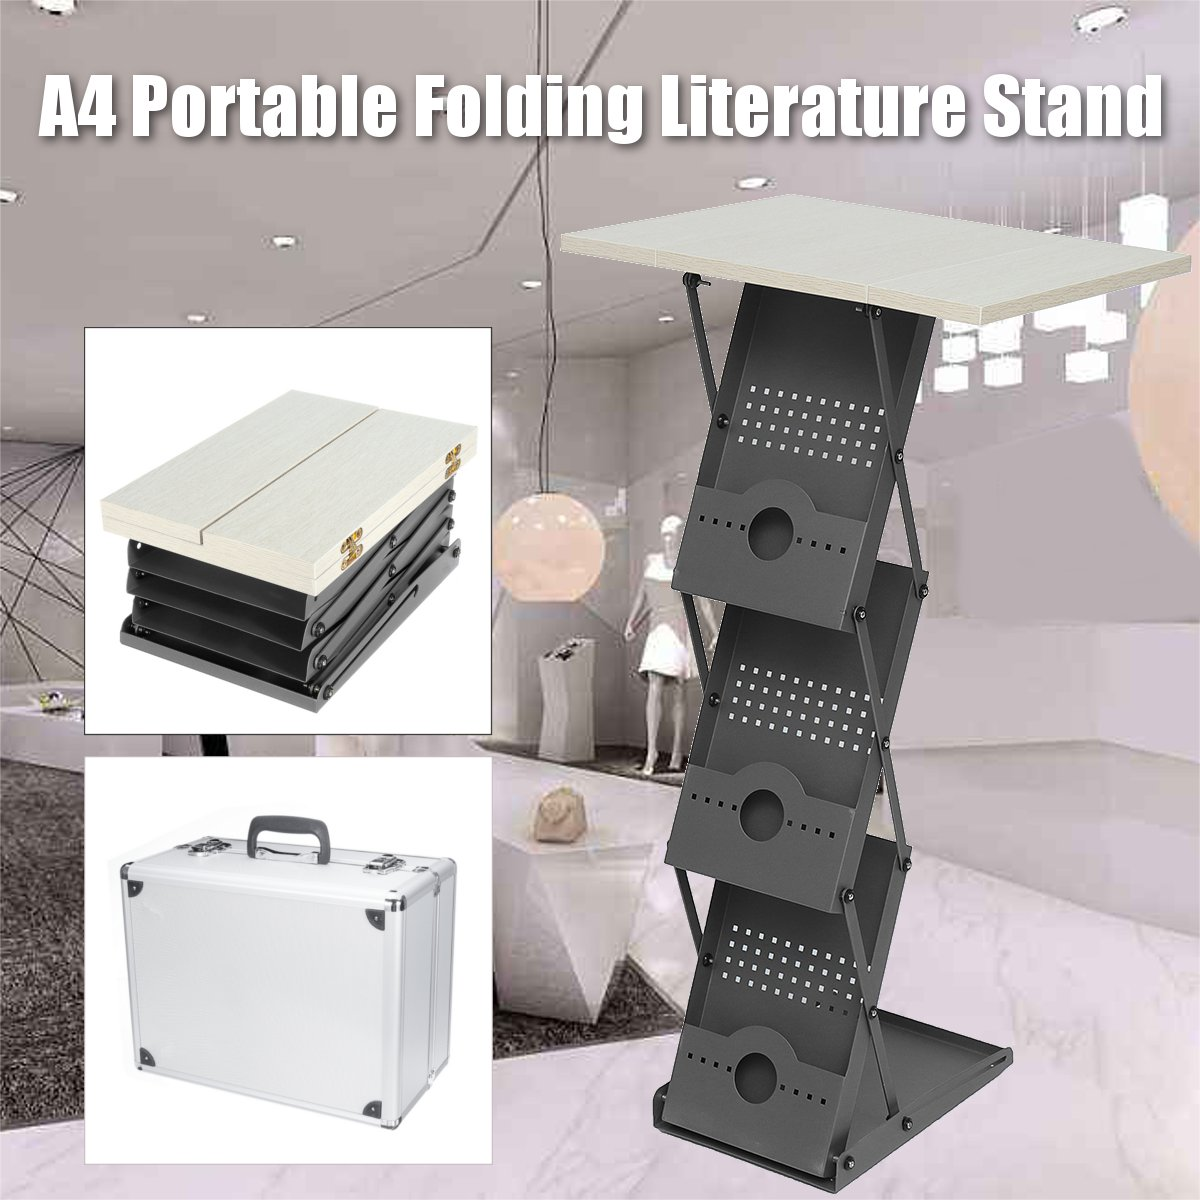 A4 Portable Literature Stand Laptop Desk Folding Exhibition Stand Floor Magazine Brochure Display Library Furniture Storage Box